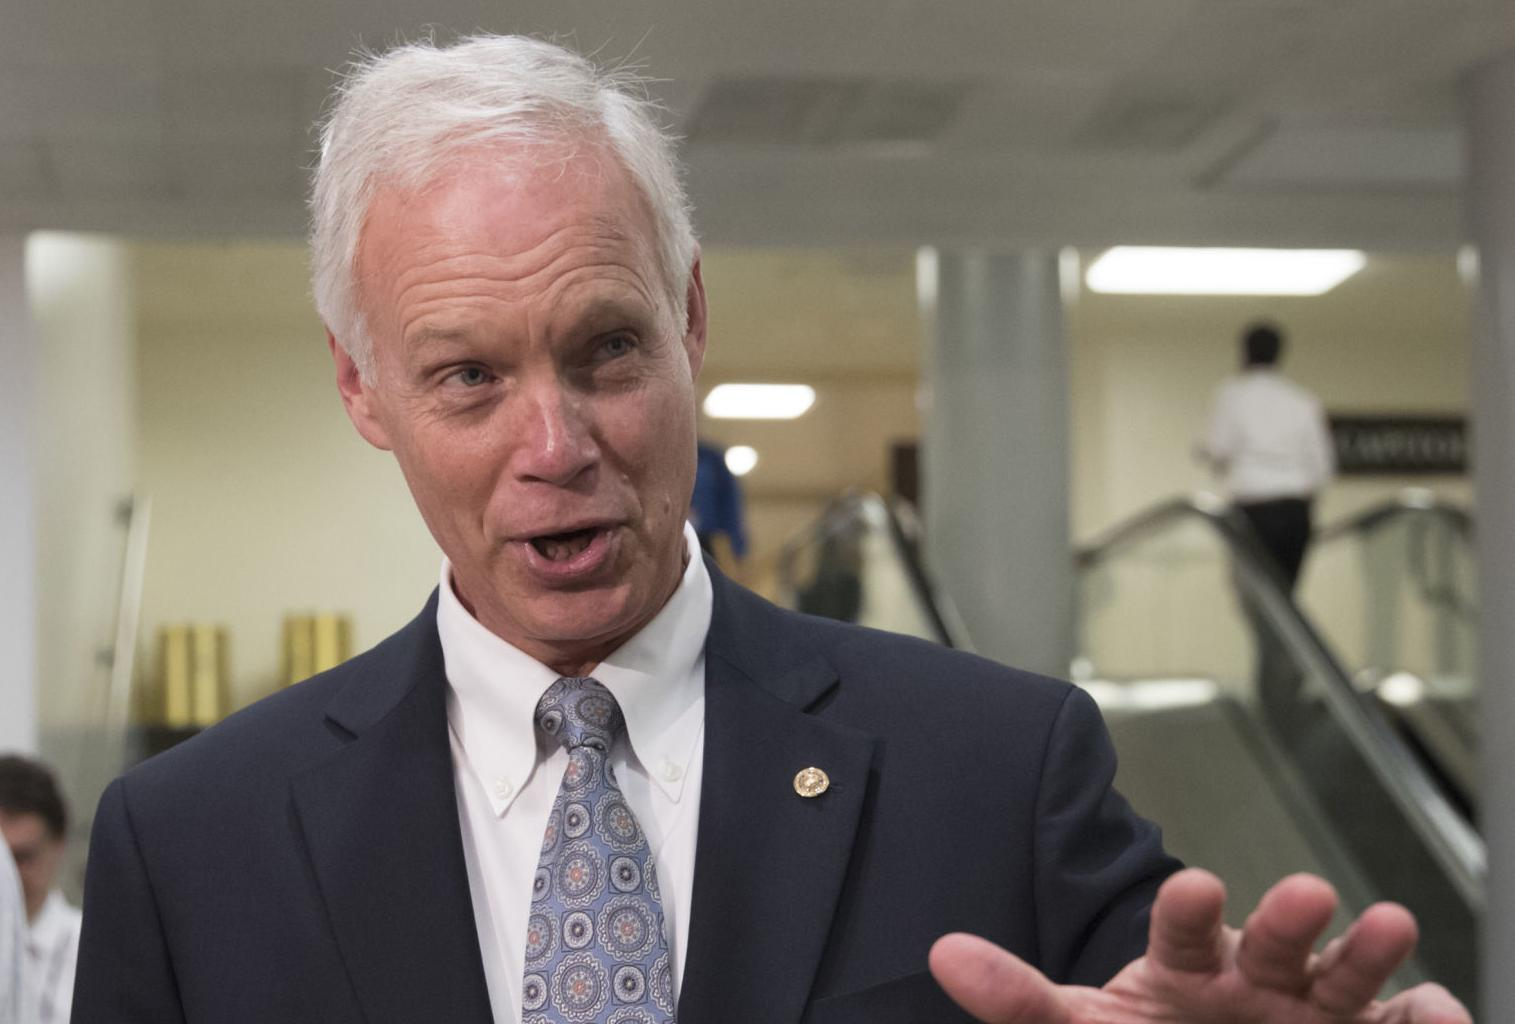 Editorial: Ron Johnson is packing federal courts with unfit nominees